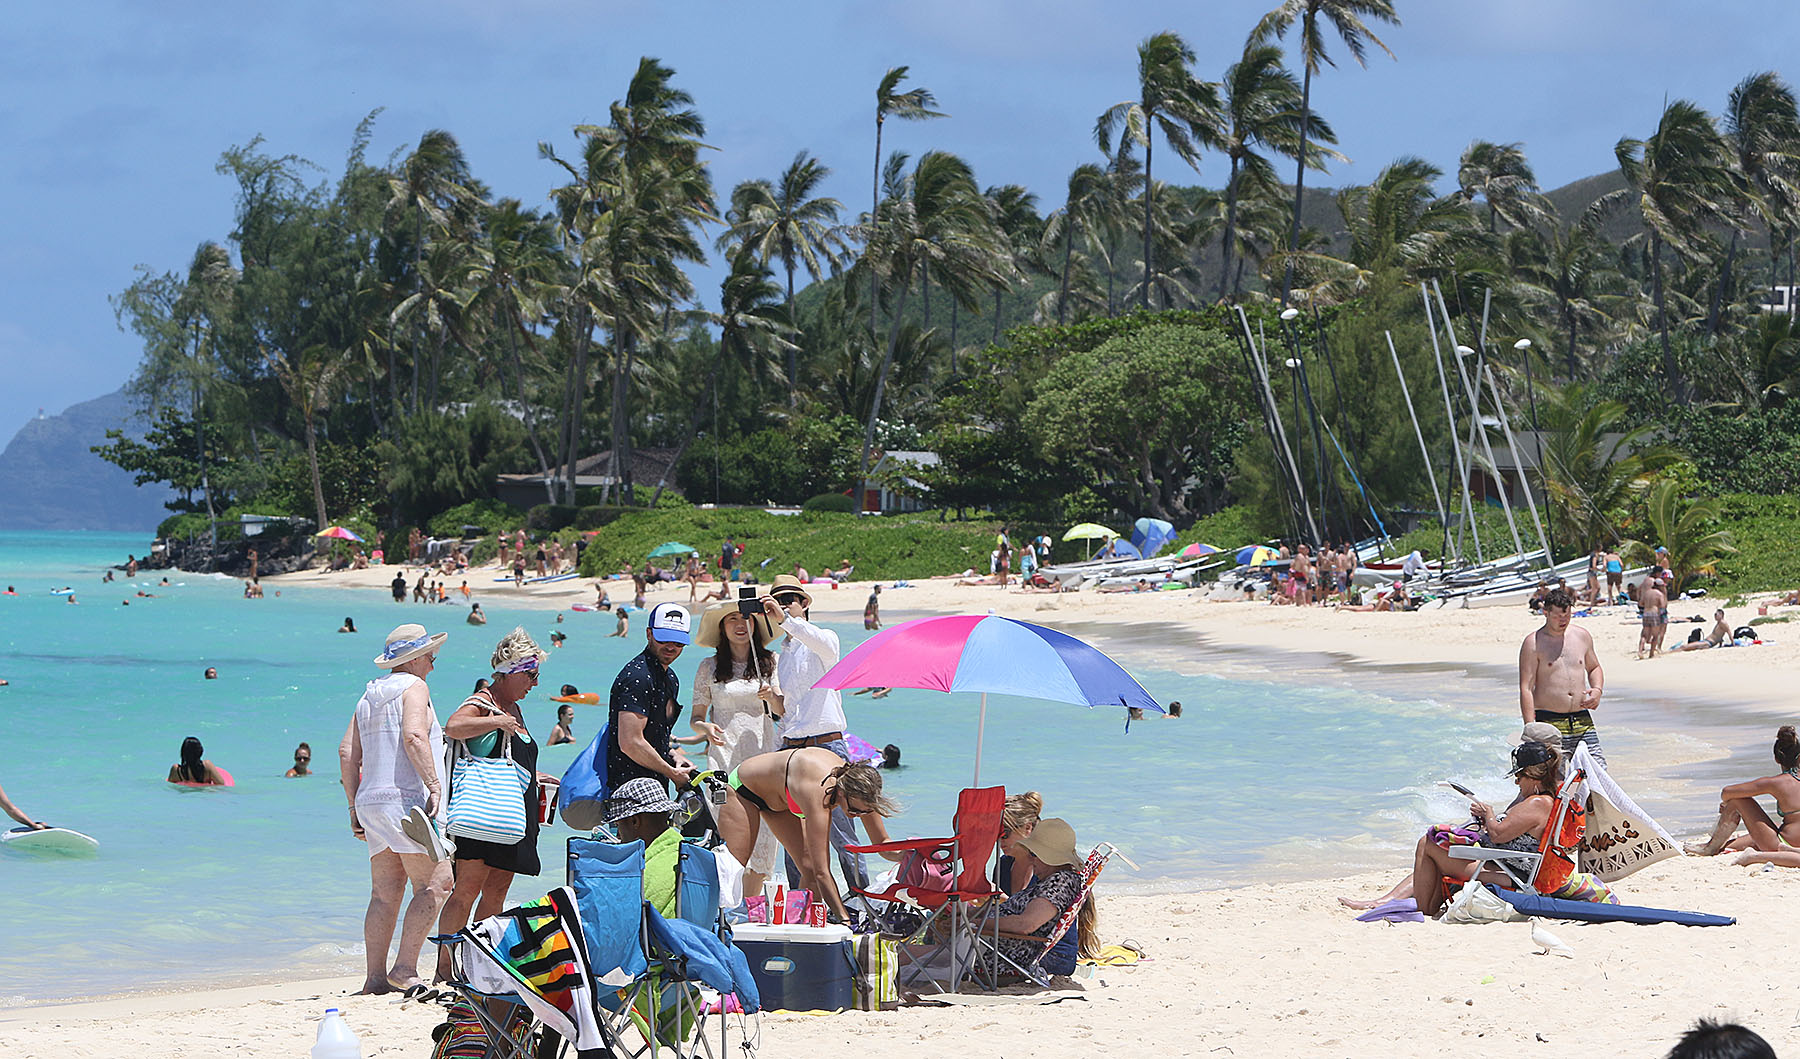 Visitors enjoy Lanikai Beach. LANIKAI TRAFFIC. 2 june 2015. photograph Cory Lum/Civil Beat